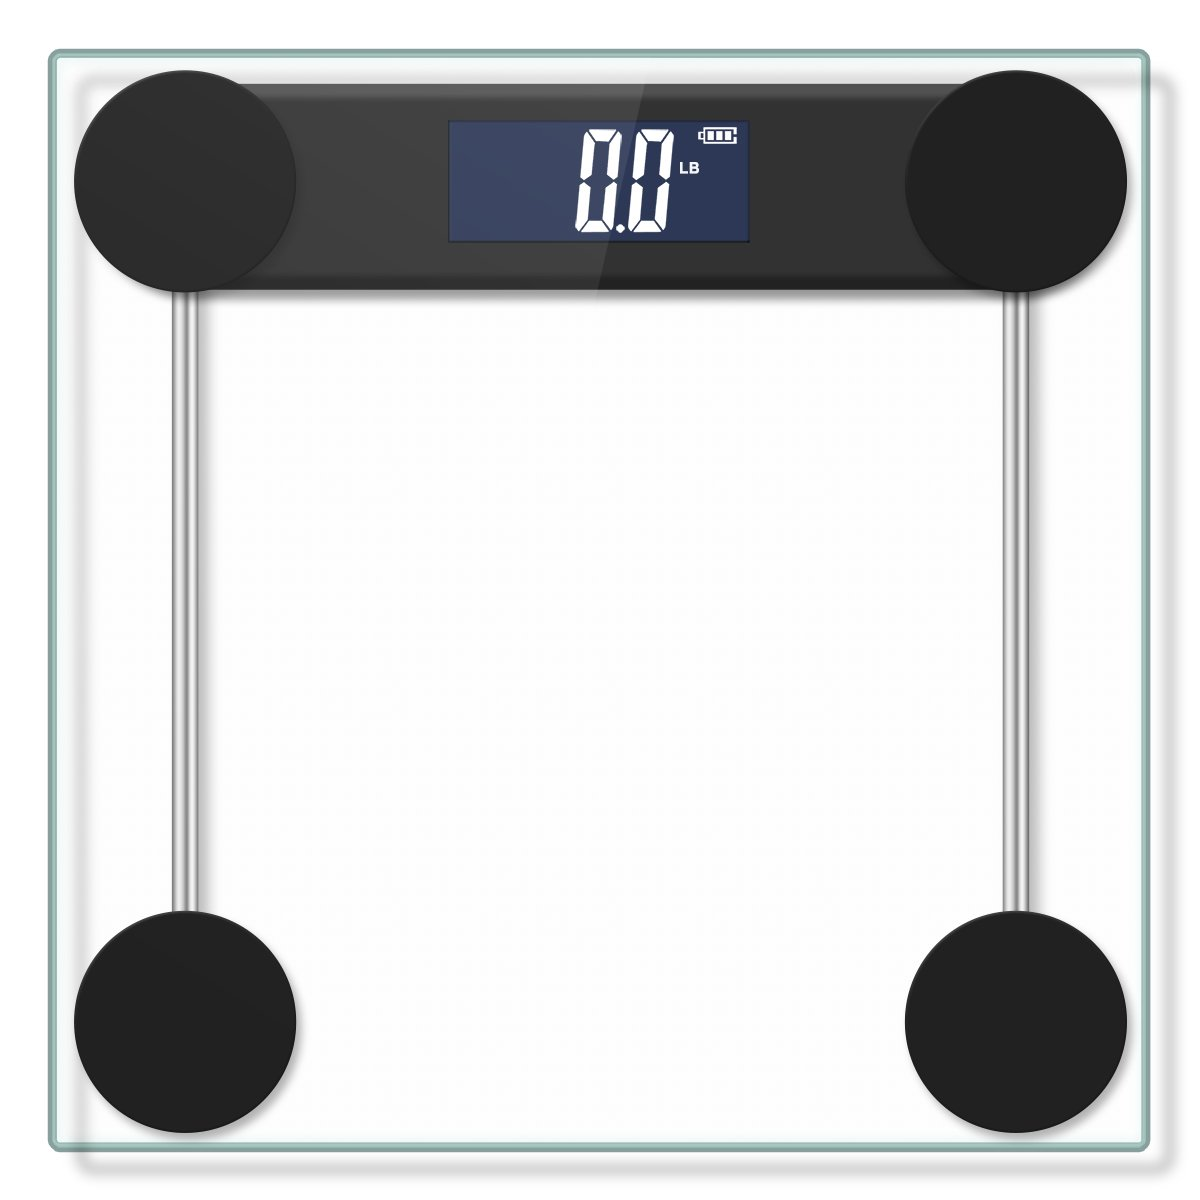 Electronic Bathroom Scale with Tempered Right Angle Glass Balance Platform and Advanced Step-On Technology, Digital Weight Scale has Large Easy Read by Yoobure